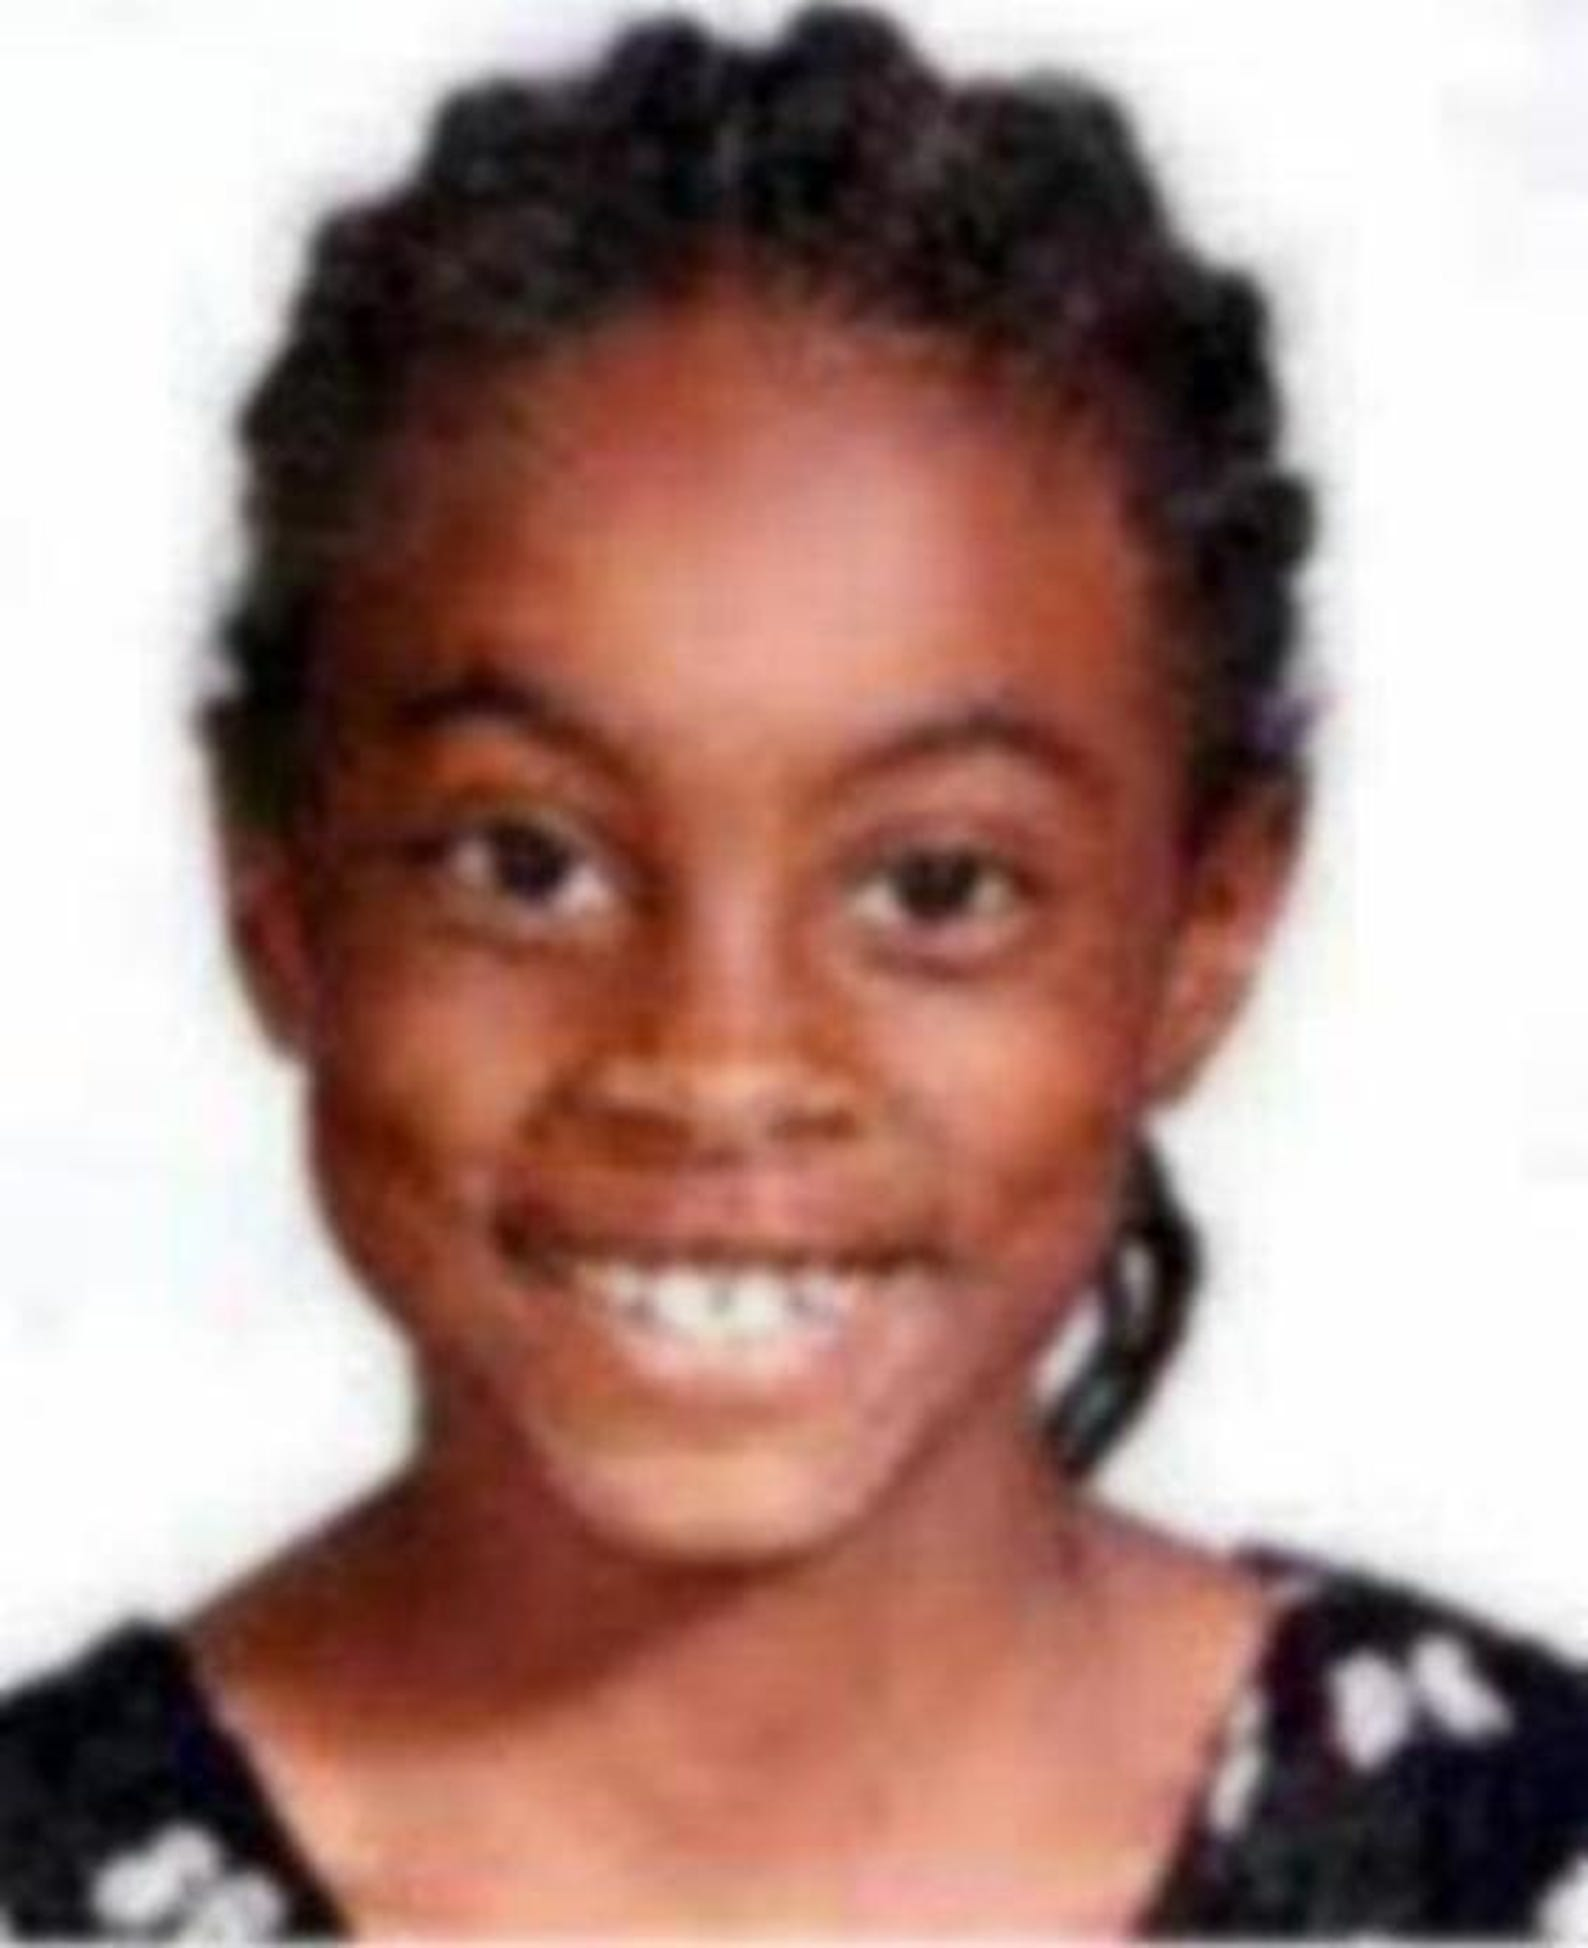 Asha Jaquilla Degree was 9 when she went missing from Shelby, North Carolina, on Feb. 14, 2000.More information and age-progressed photos here.